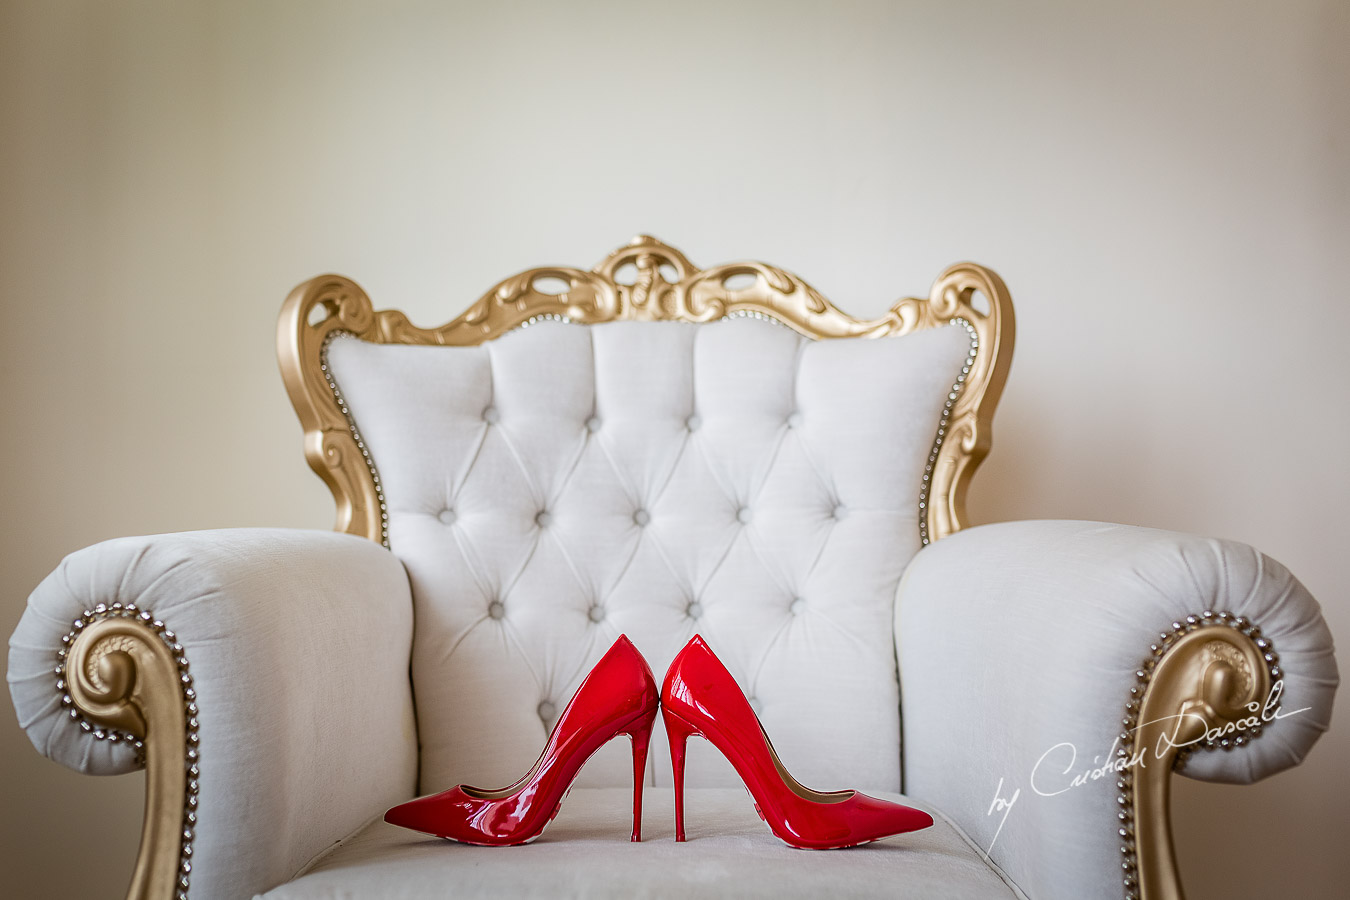 Bride's shoes photographed at a wedding in Nicosia by Cyprus Wedding Photographer Cristian Dascalu